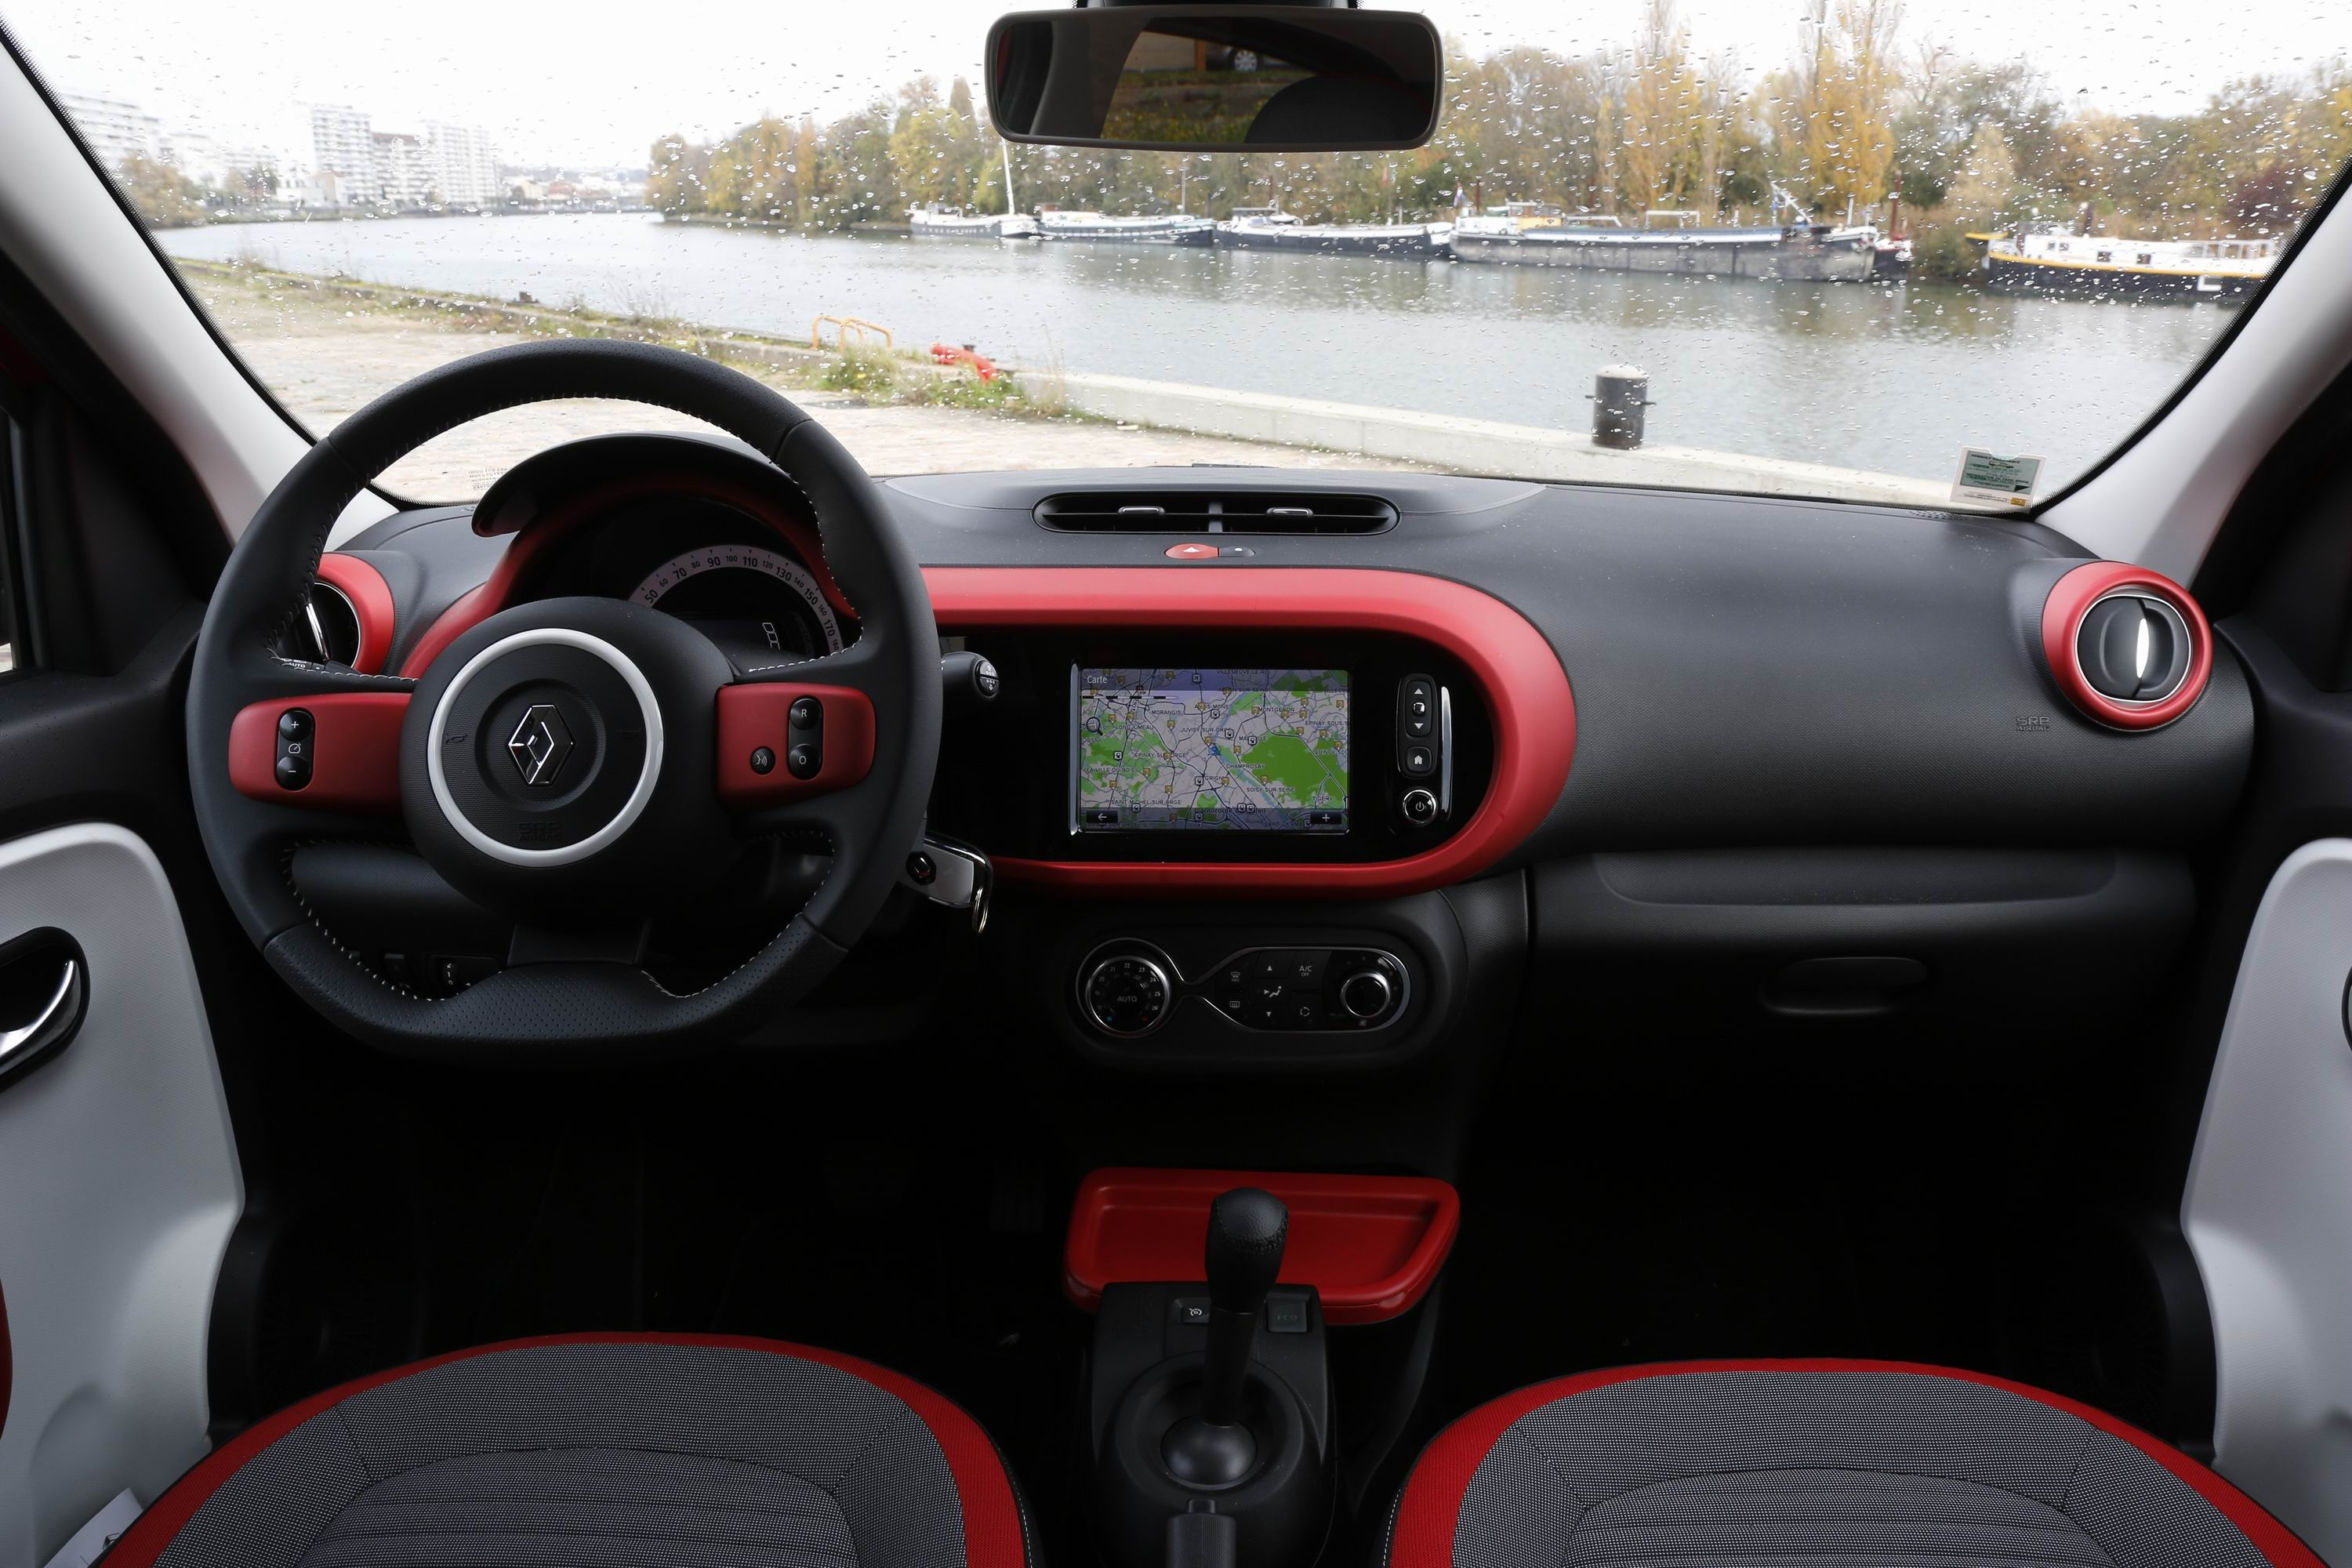 essai renault twingo gt edc jeu de dupes caradisiac autos post. Black Bedroom Furniture Sets. Home Design Ideas